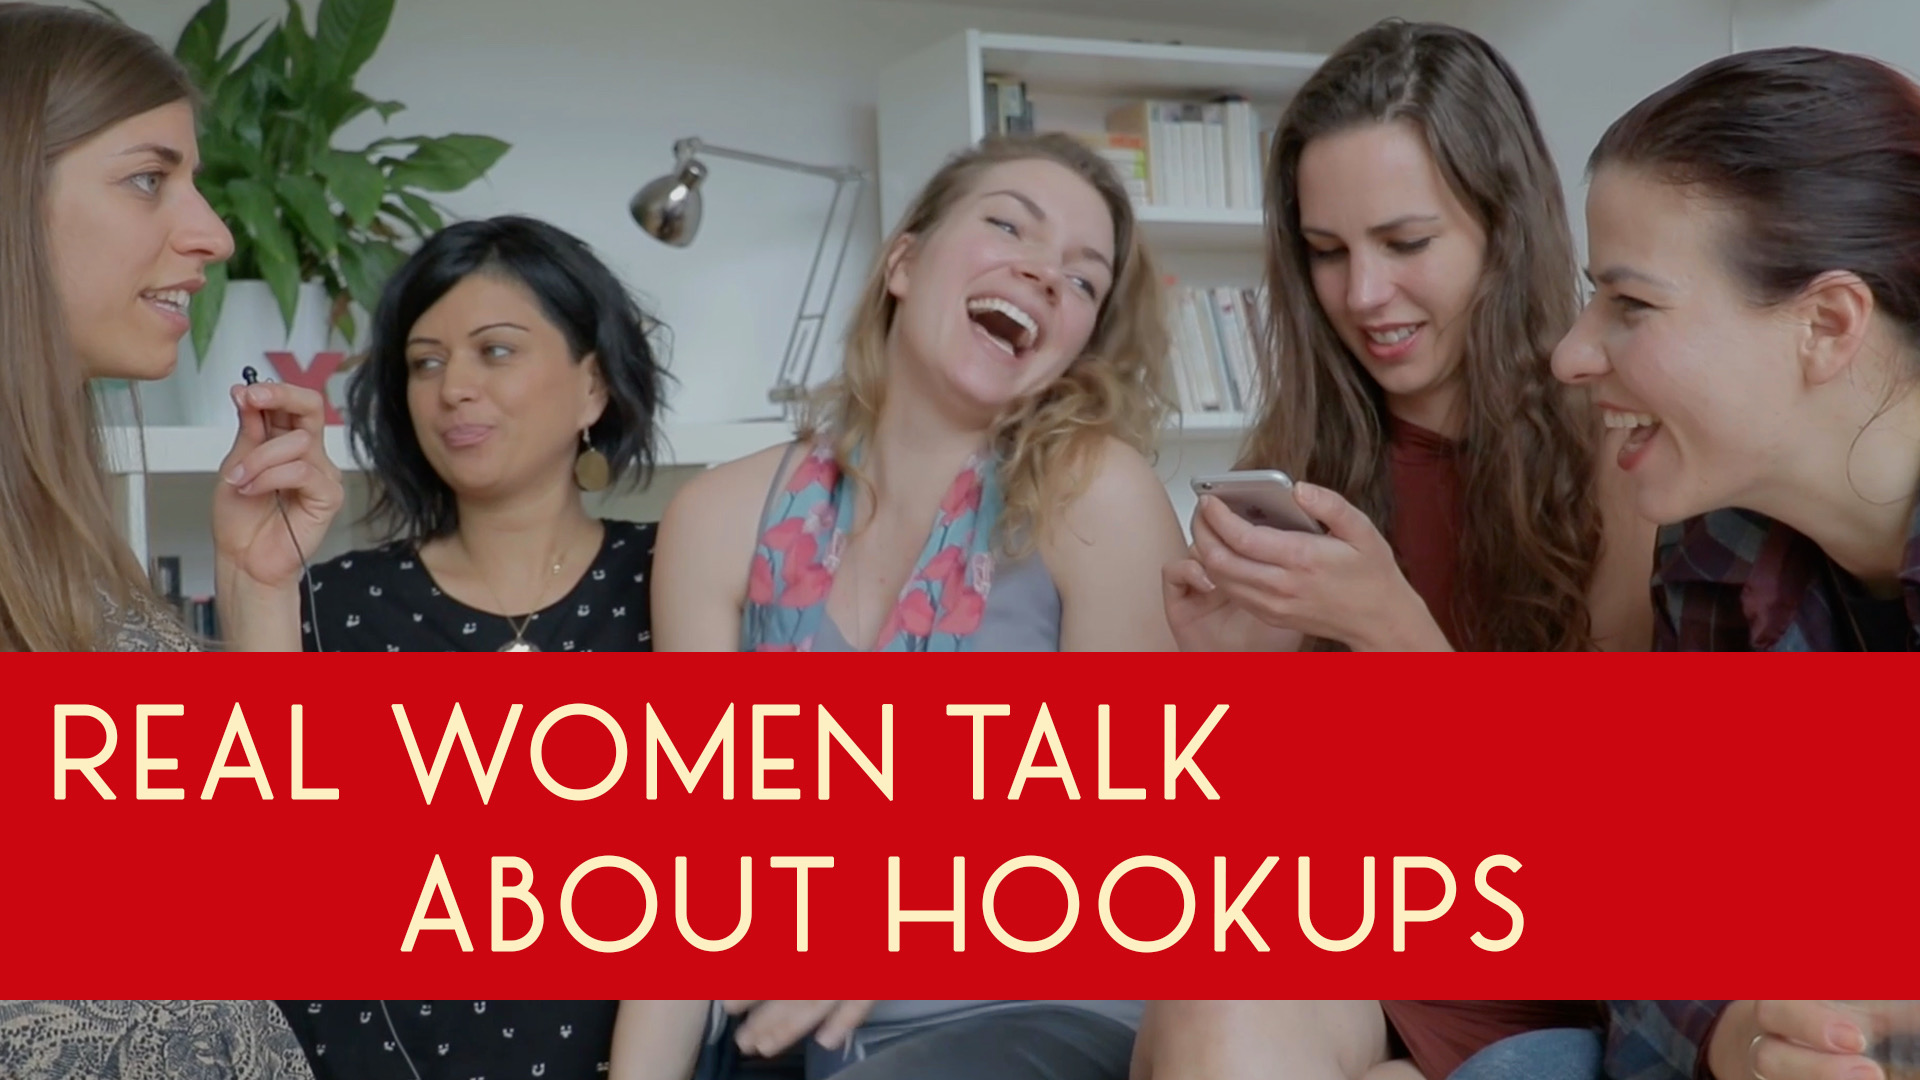 Real Women Talk About Hookups